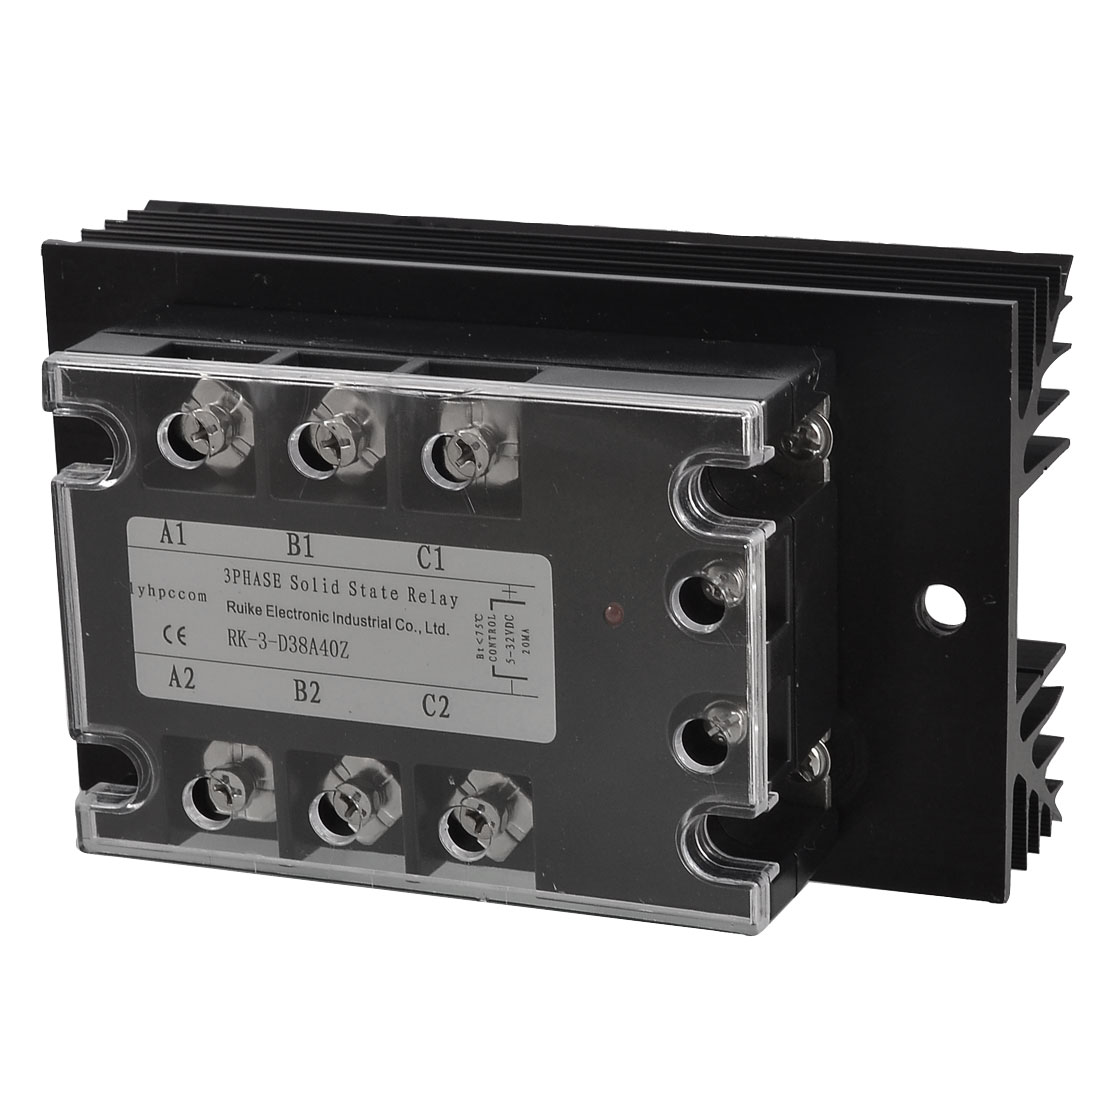 DC 5-32V to AC 380V 40A 3 Phase SSR Solid State Relay w Black Heat Sink